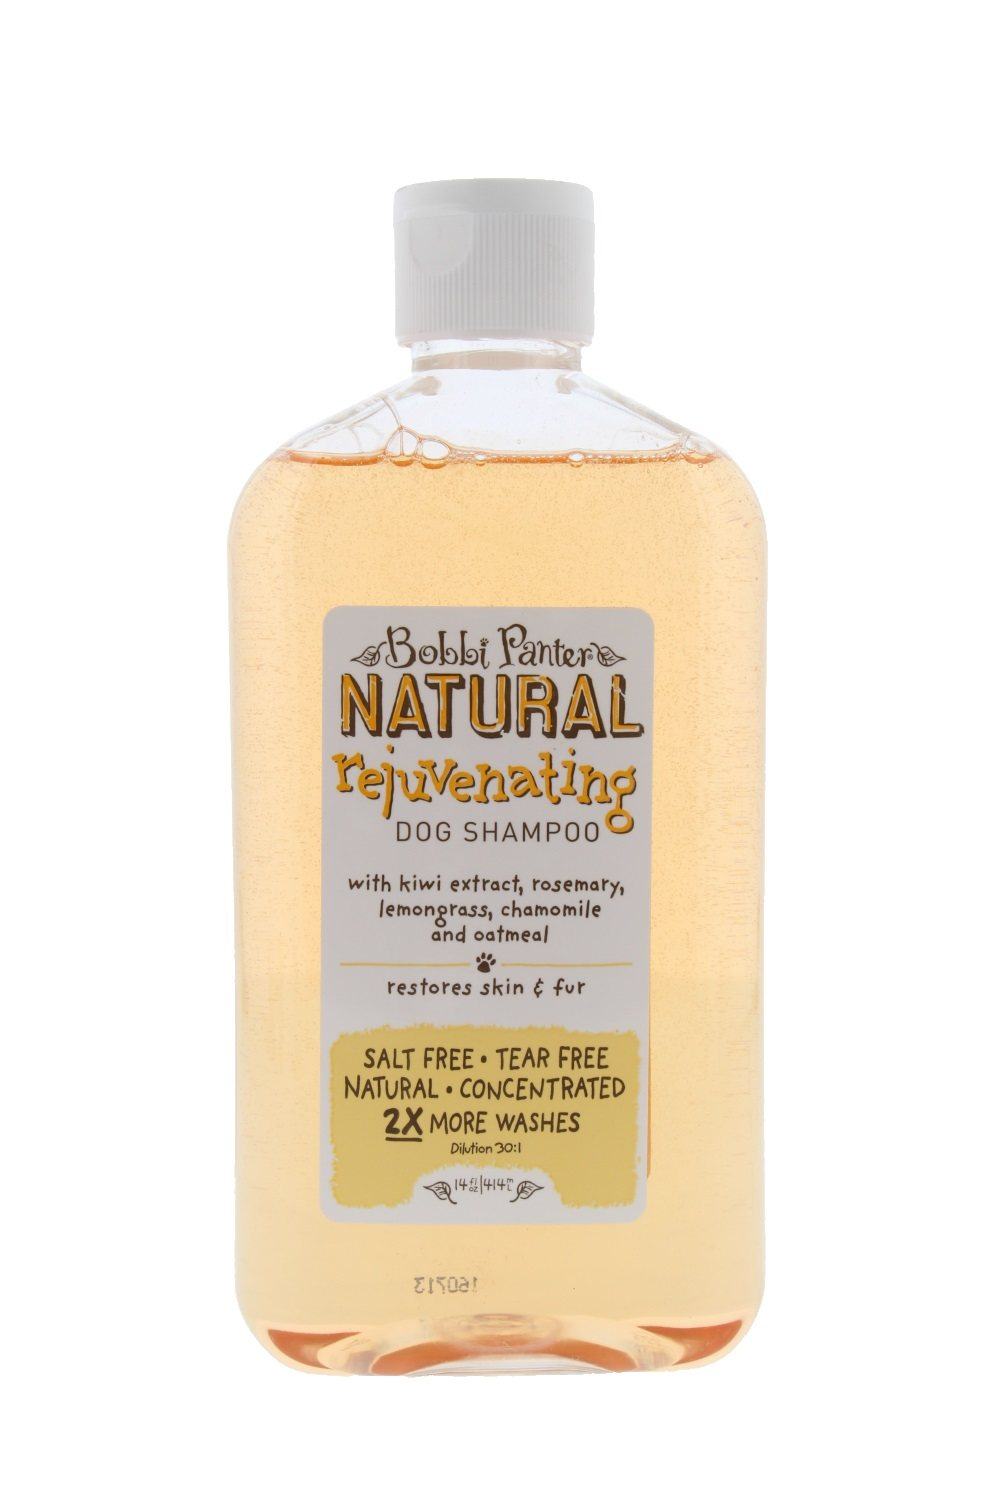 Bobbi Panter Pet Products 00016 Natural Line Dog Shampoo, Rejuvenating, 14-oz. by BOBBI PANTER PET PRODUCTS